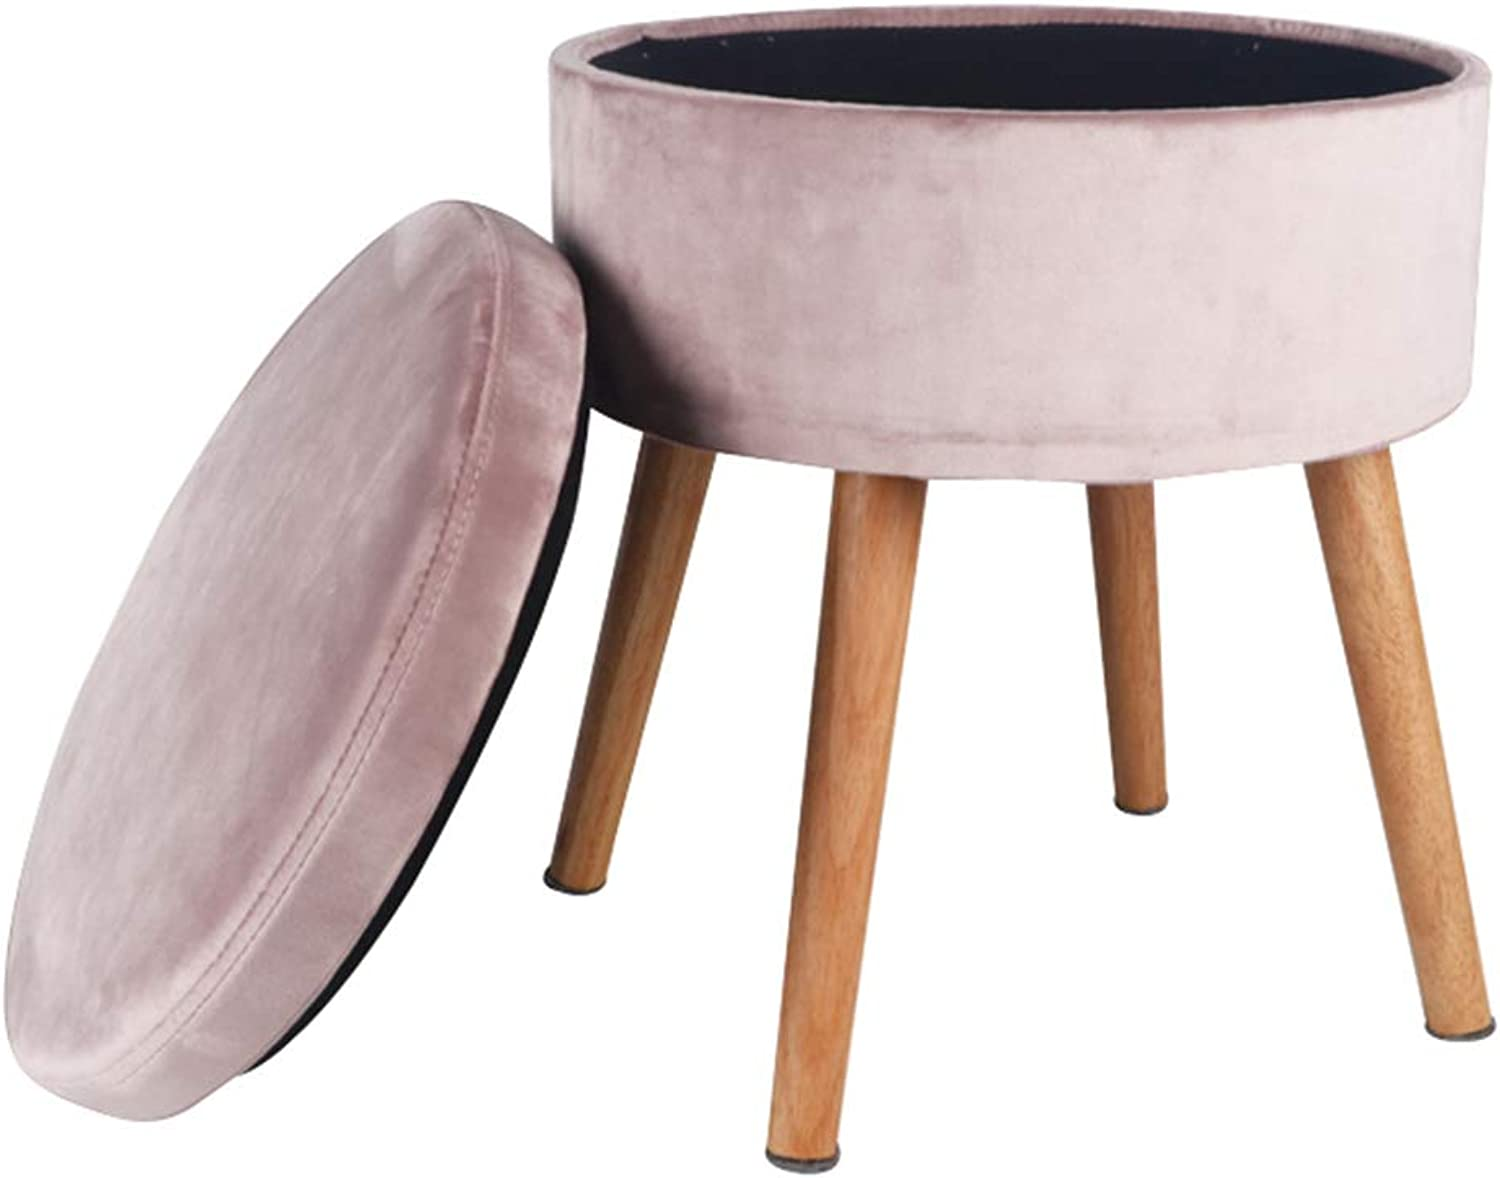 Storage Footstool Nordic Dressing Table Stool Bedroom Creative Low Stool Change shoes Bench GAOFENG (color   Tender Pink, Size   34  41cm)